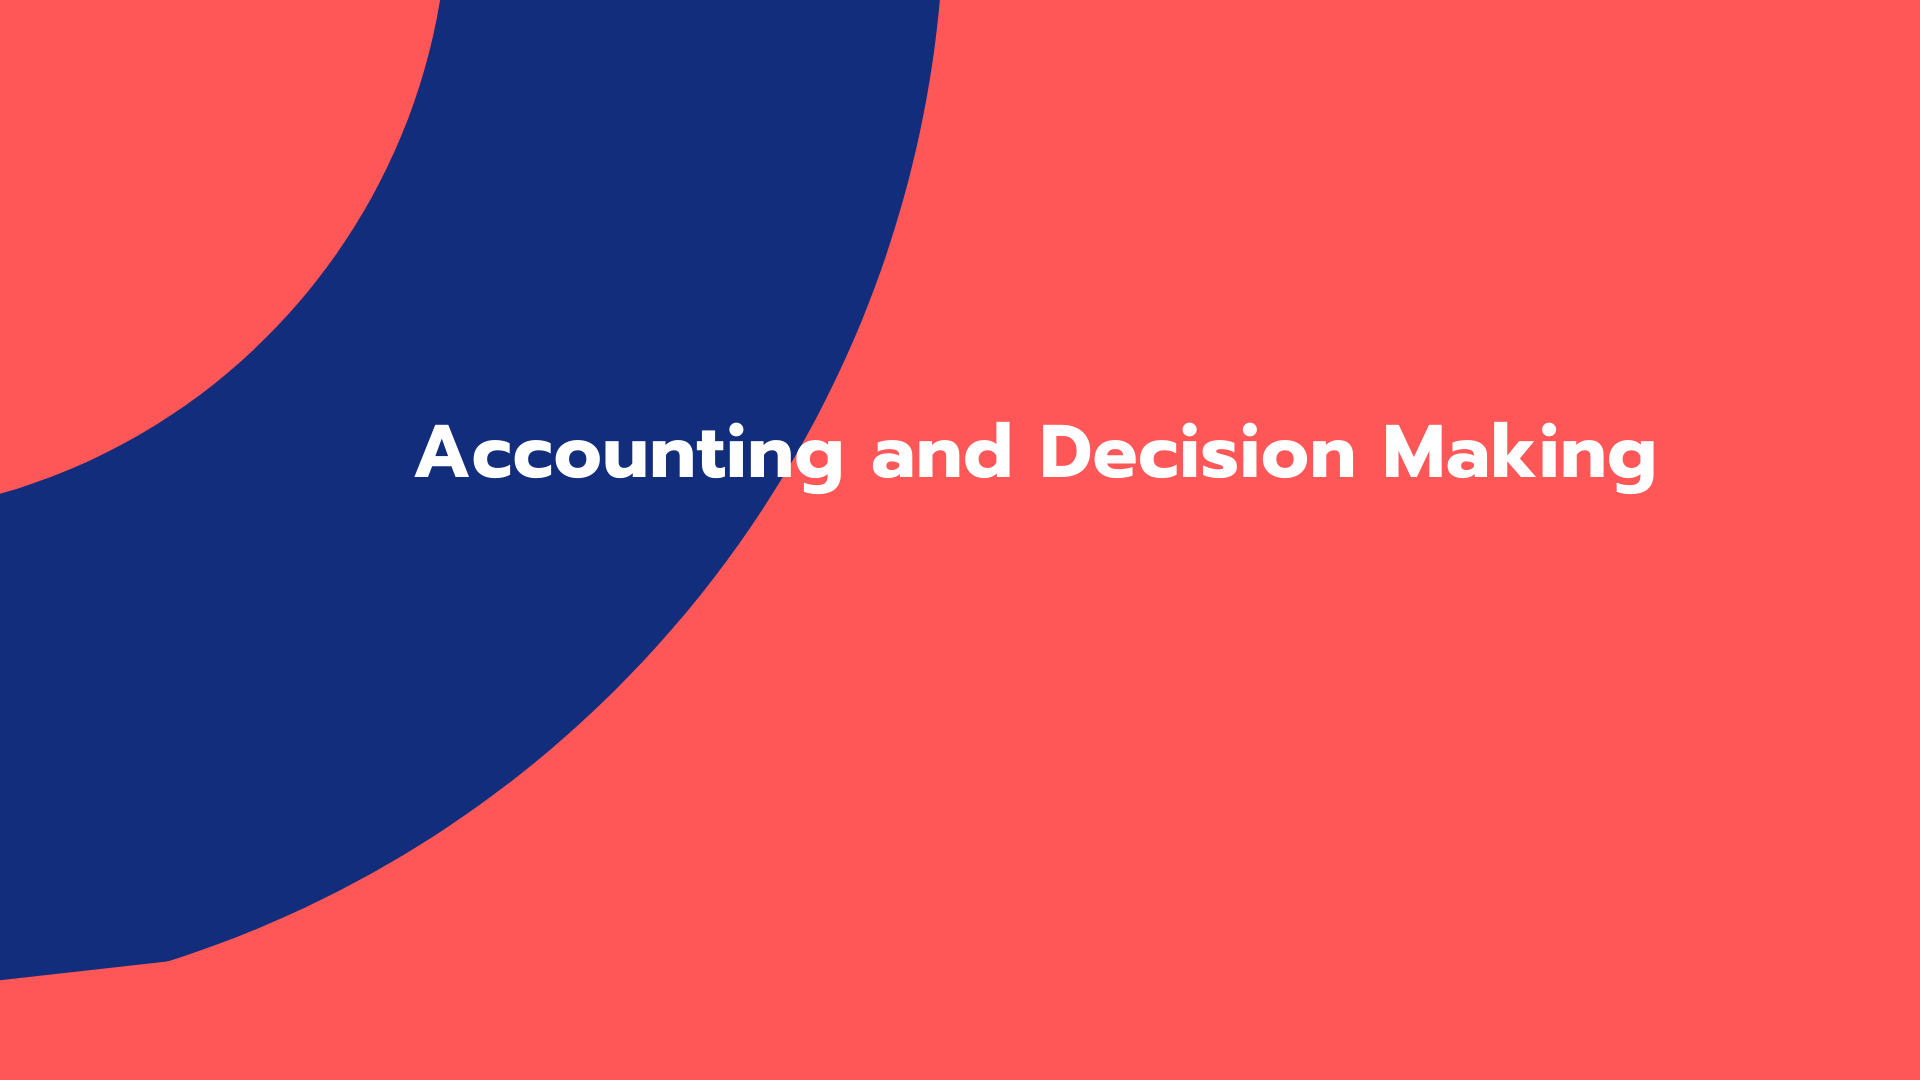 Accounting and Decision Making